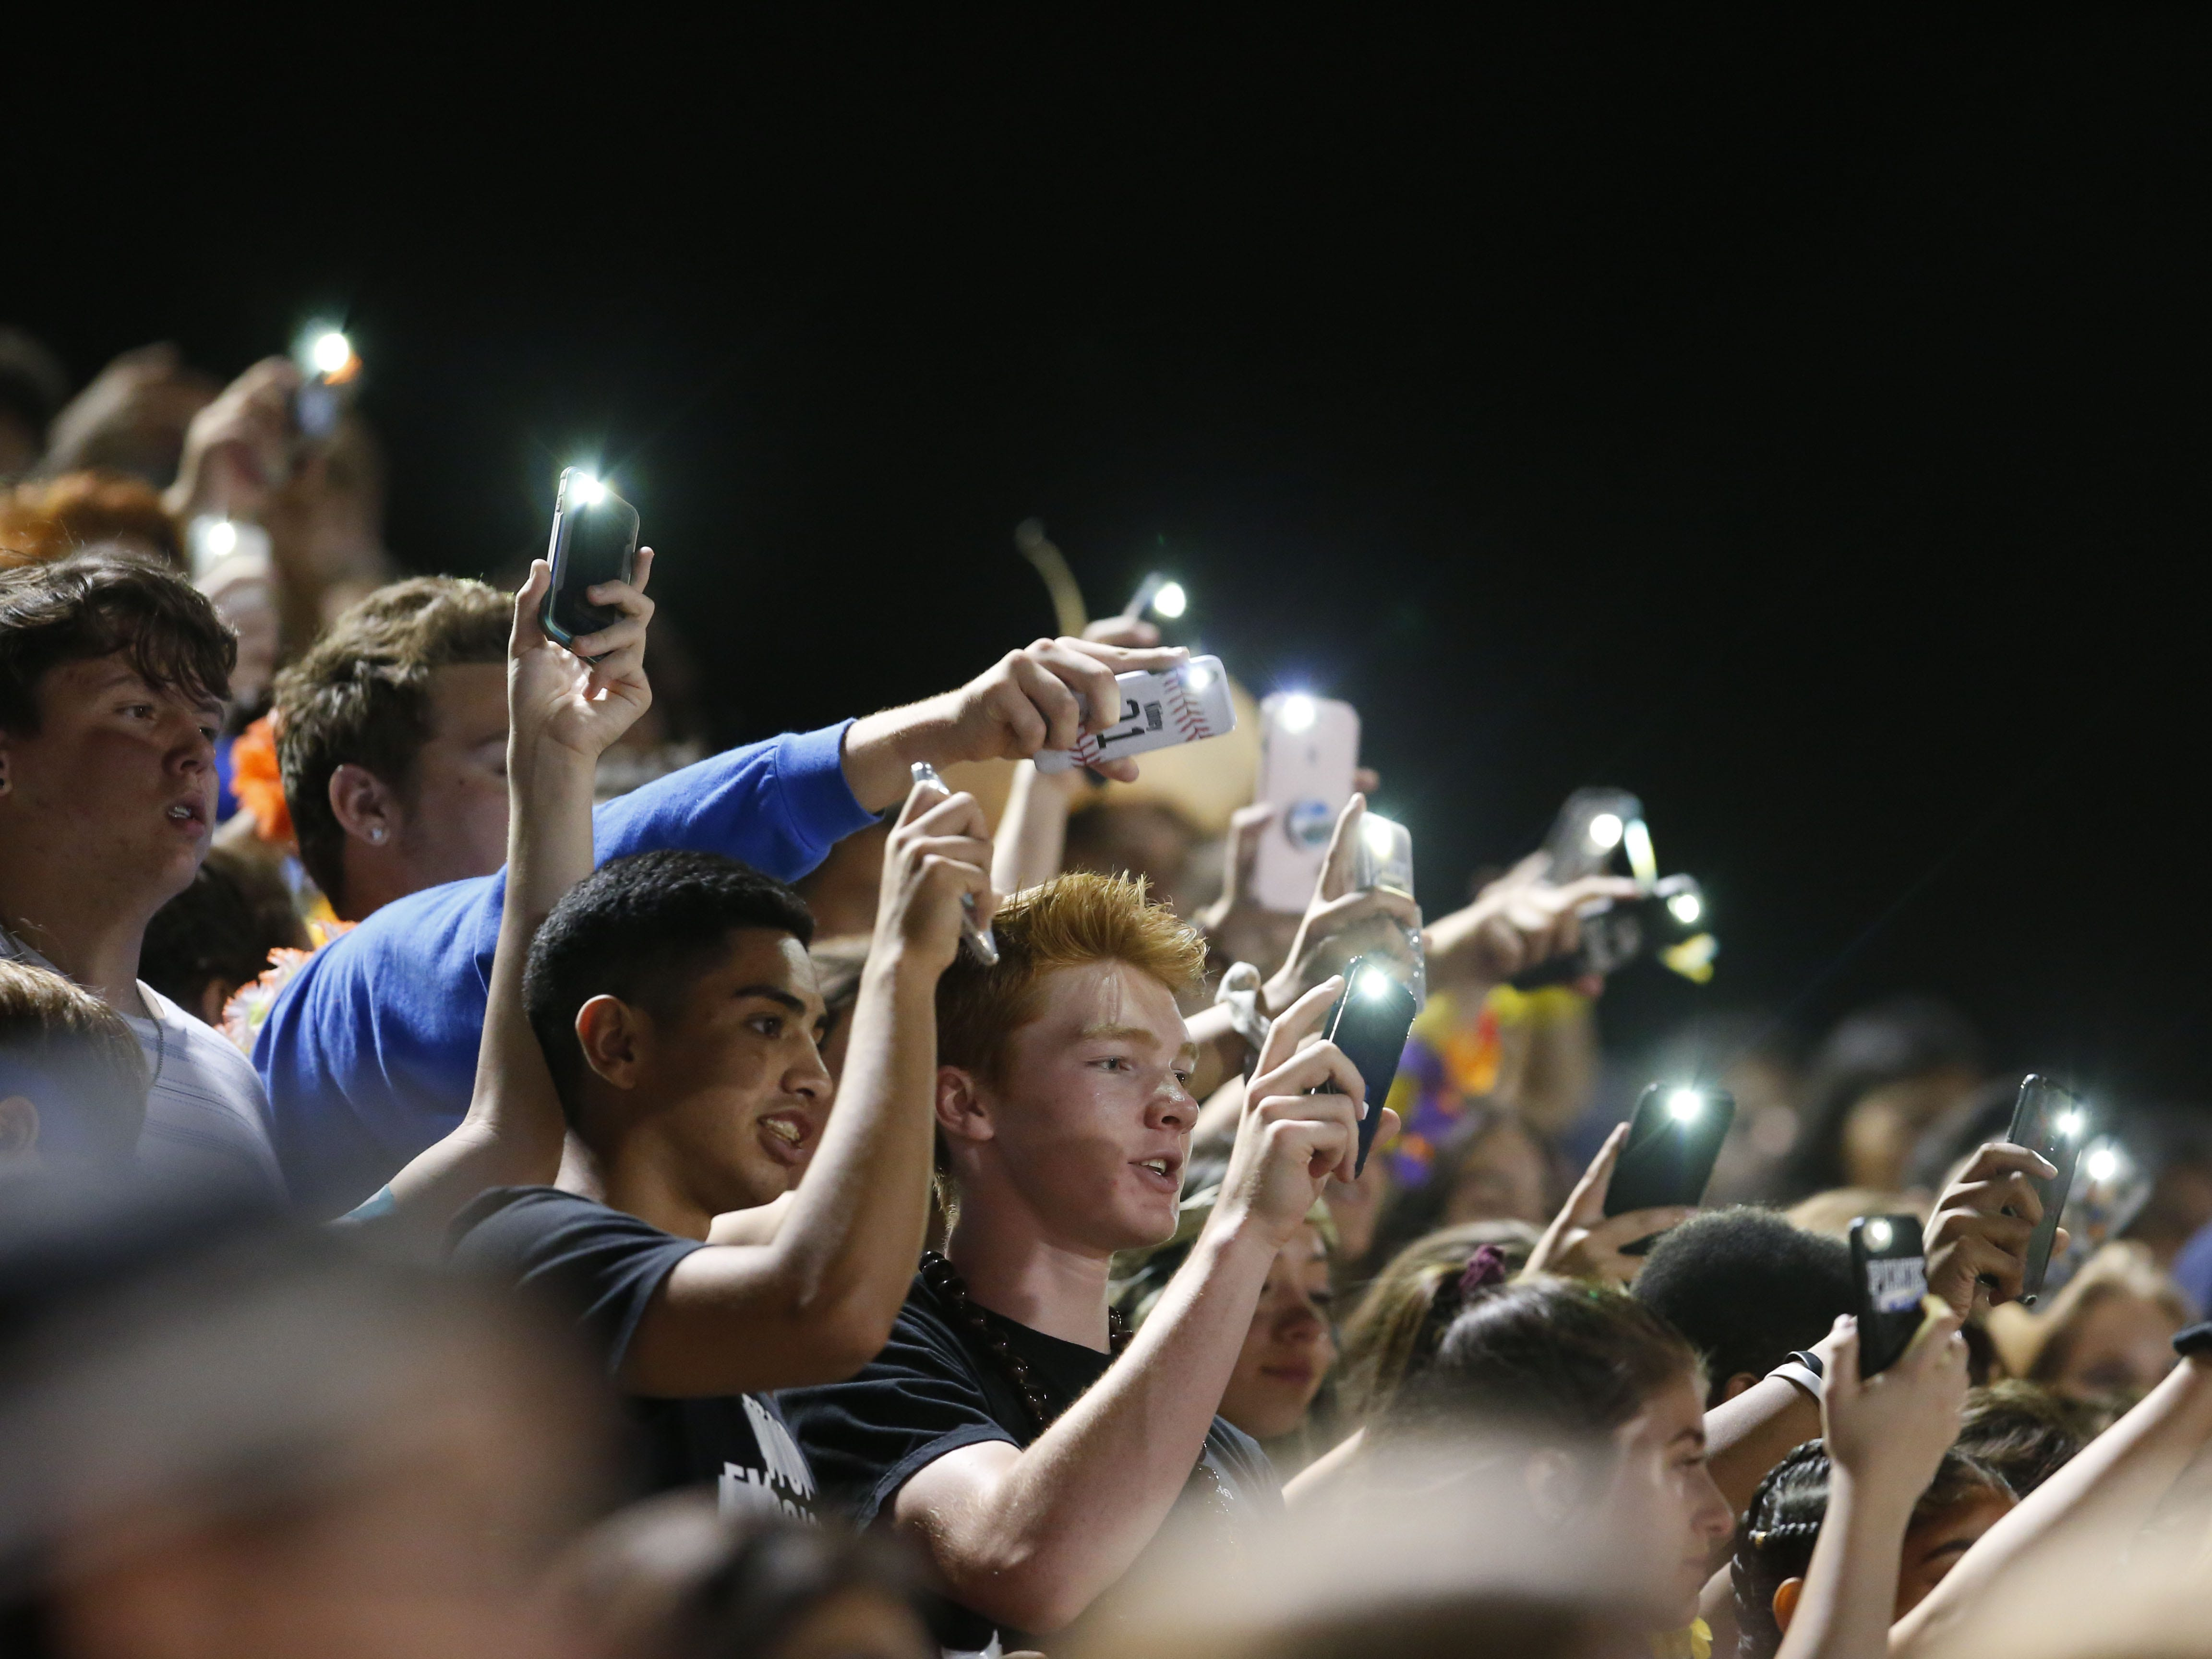 Chandler fans cheer after a touchdown during a high school football against Queen Creek at Chandler High on August 24, 2018. #azhsfb